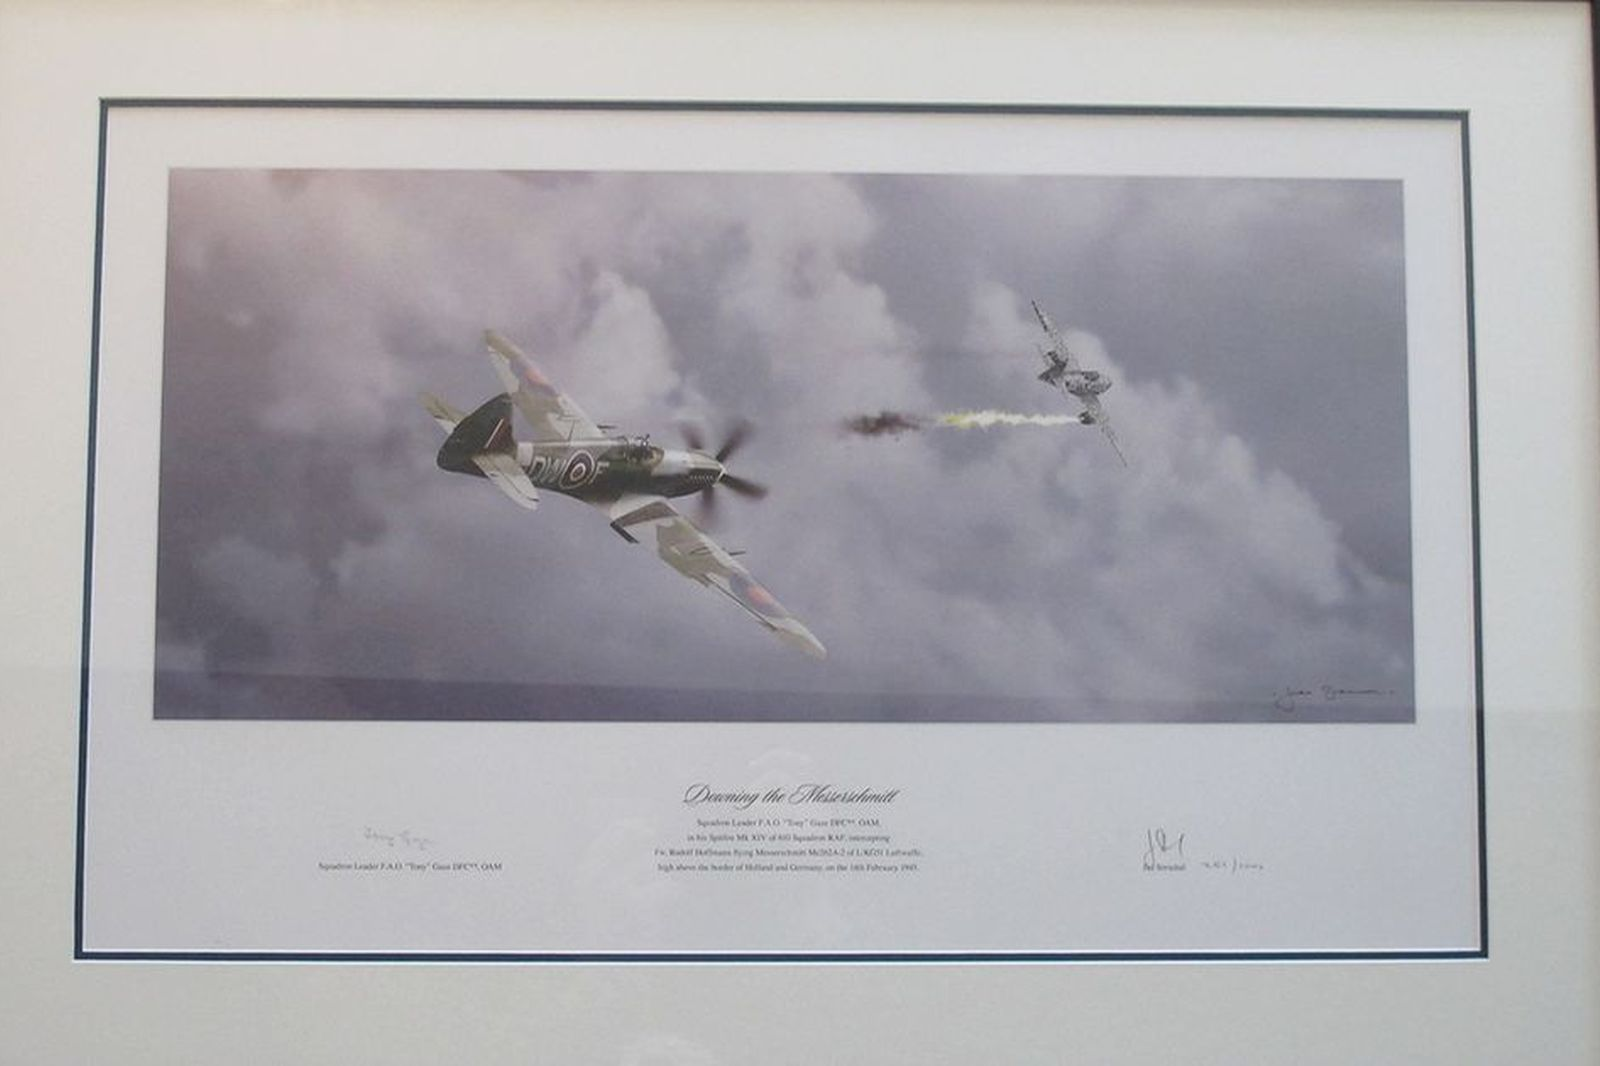 Framed Signed Print 'Downing The Messerschmitt' (85 x 59cm)